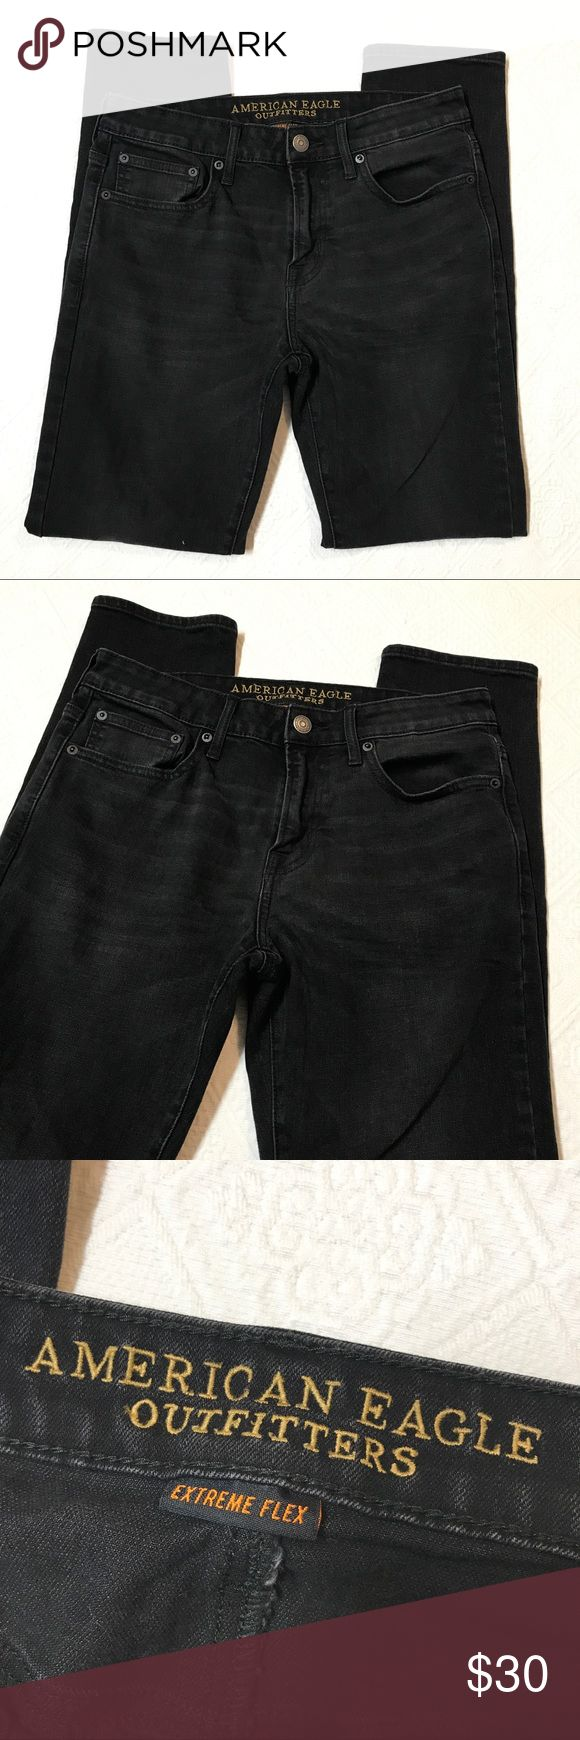 Skinny American Eagle Men's jeans size 32 EUC skinny American Eagle Men's jeans extreme flex. No flaws great condition! American Eagle Outfitters Jeans Skinny